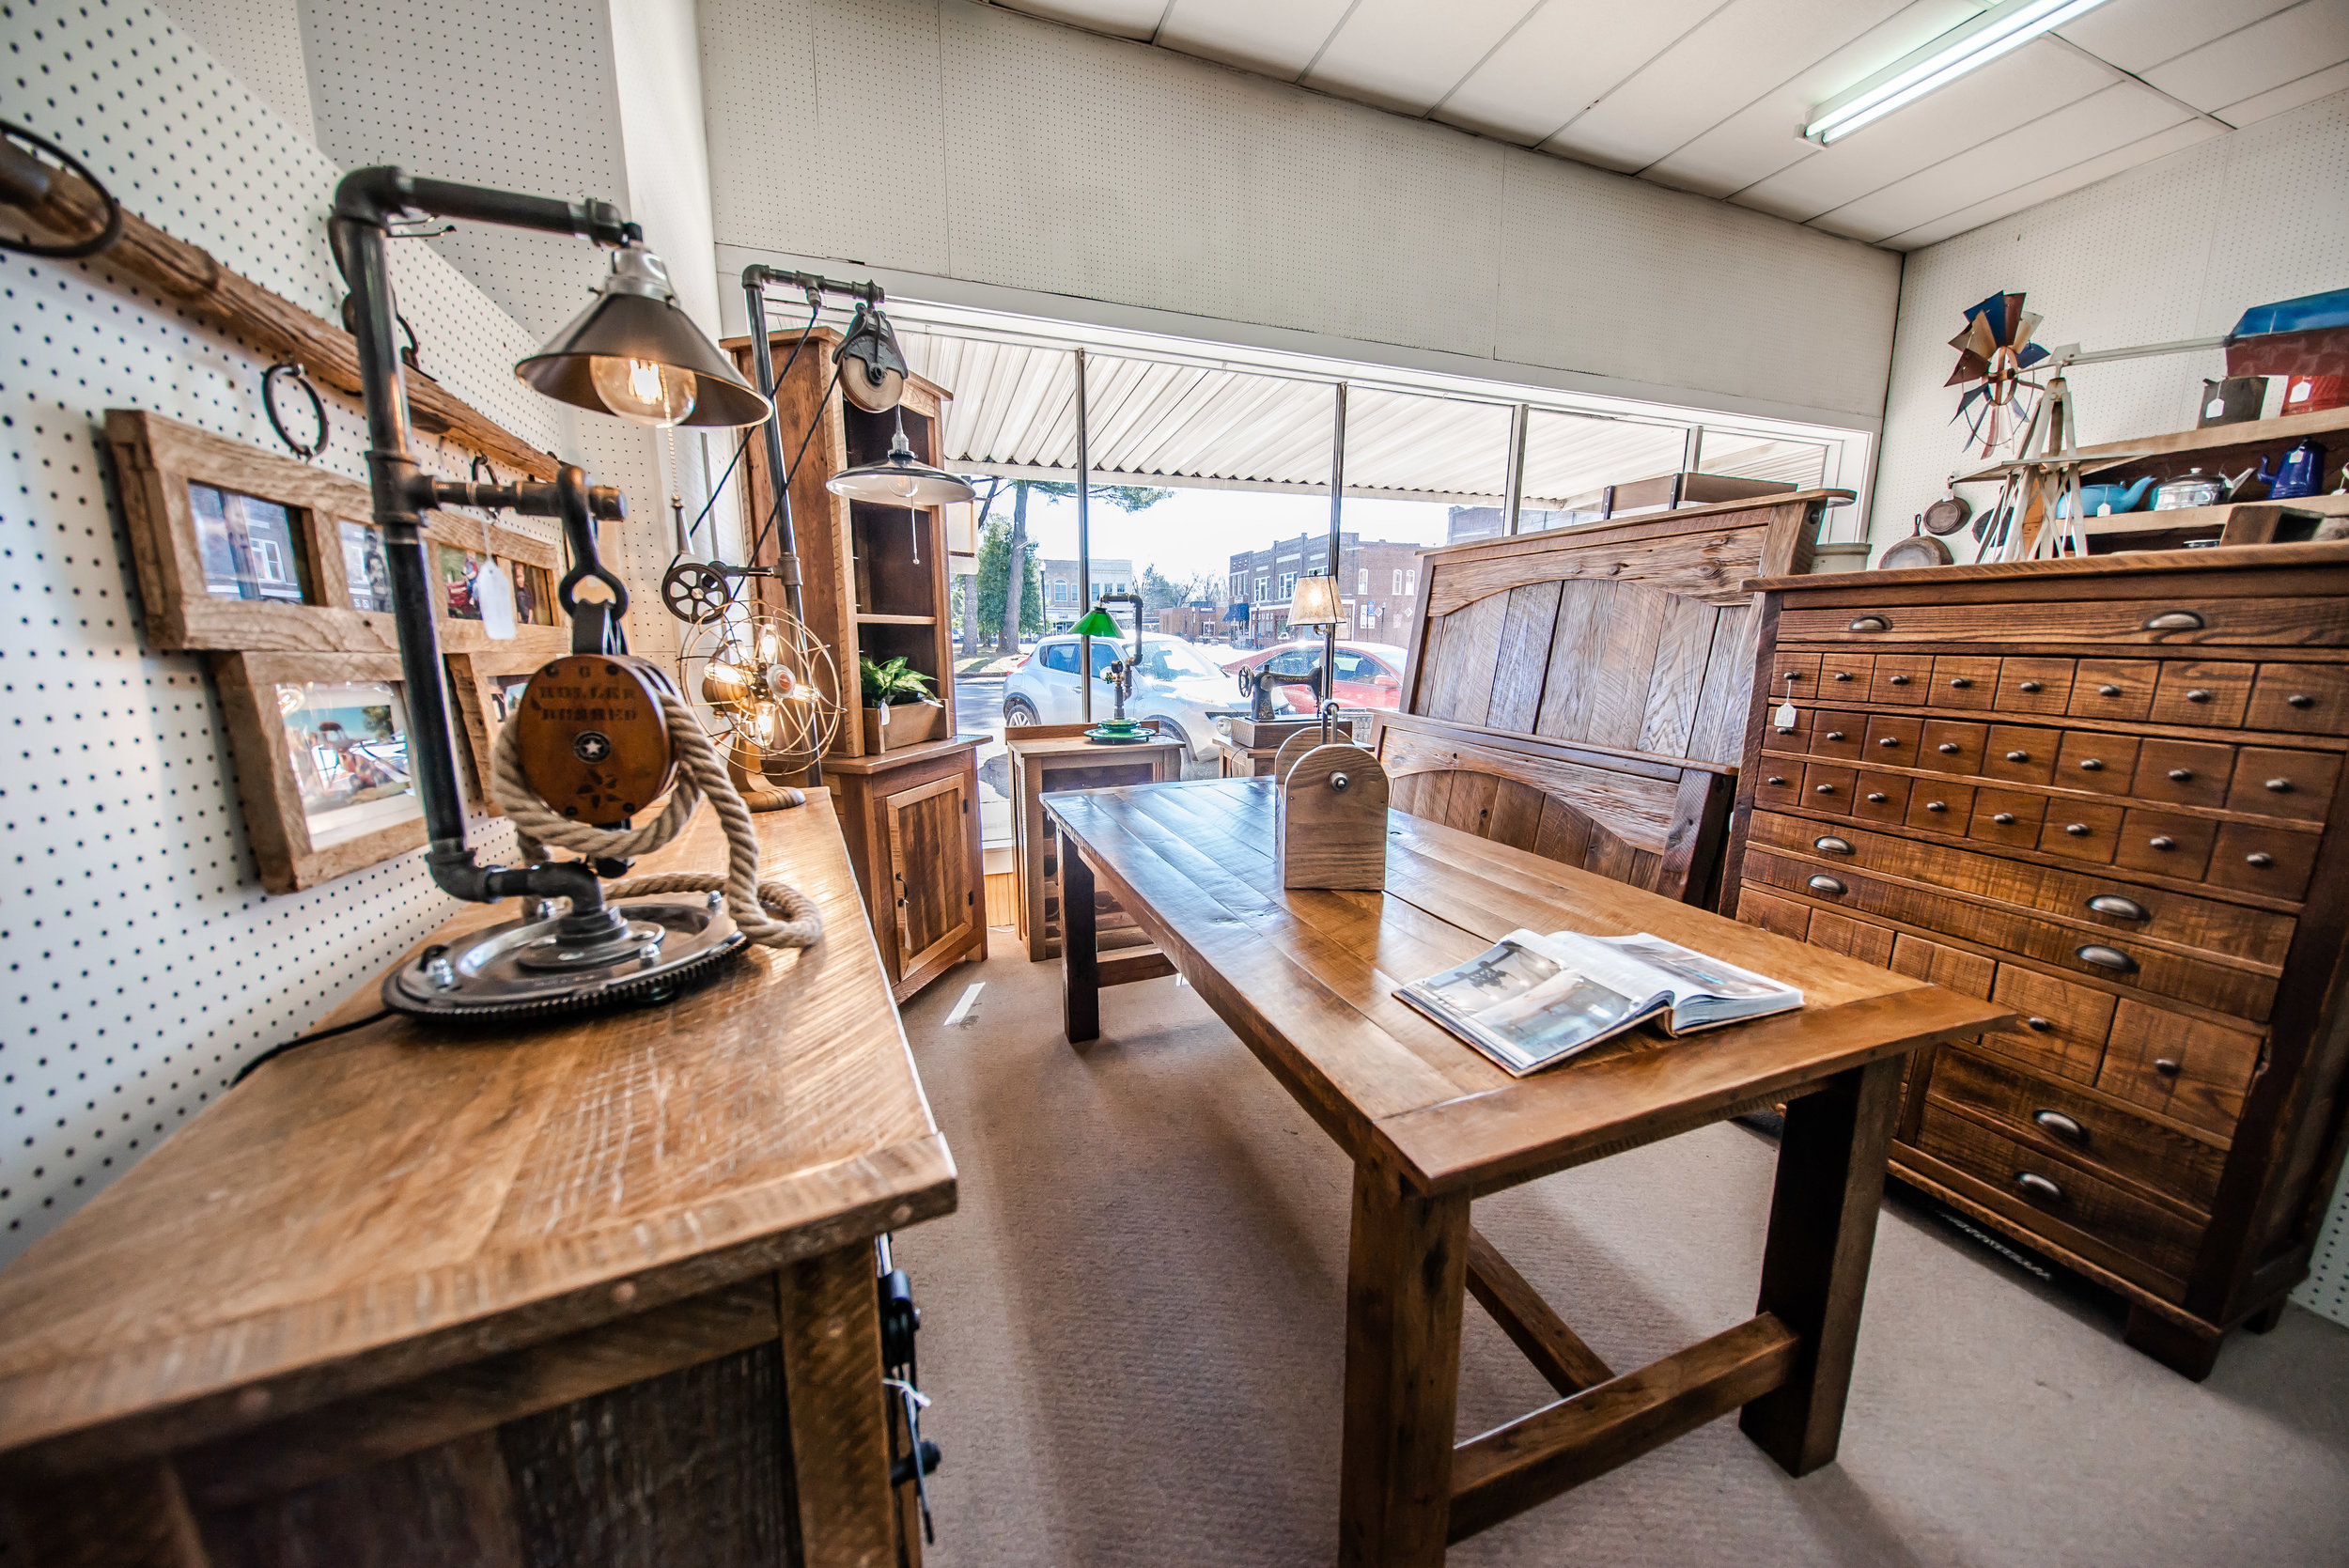 Antique Furniture in Benton Illinois at County Seat Antique Mall